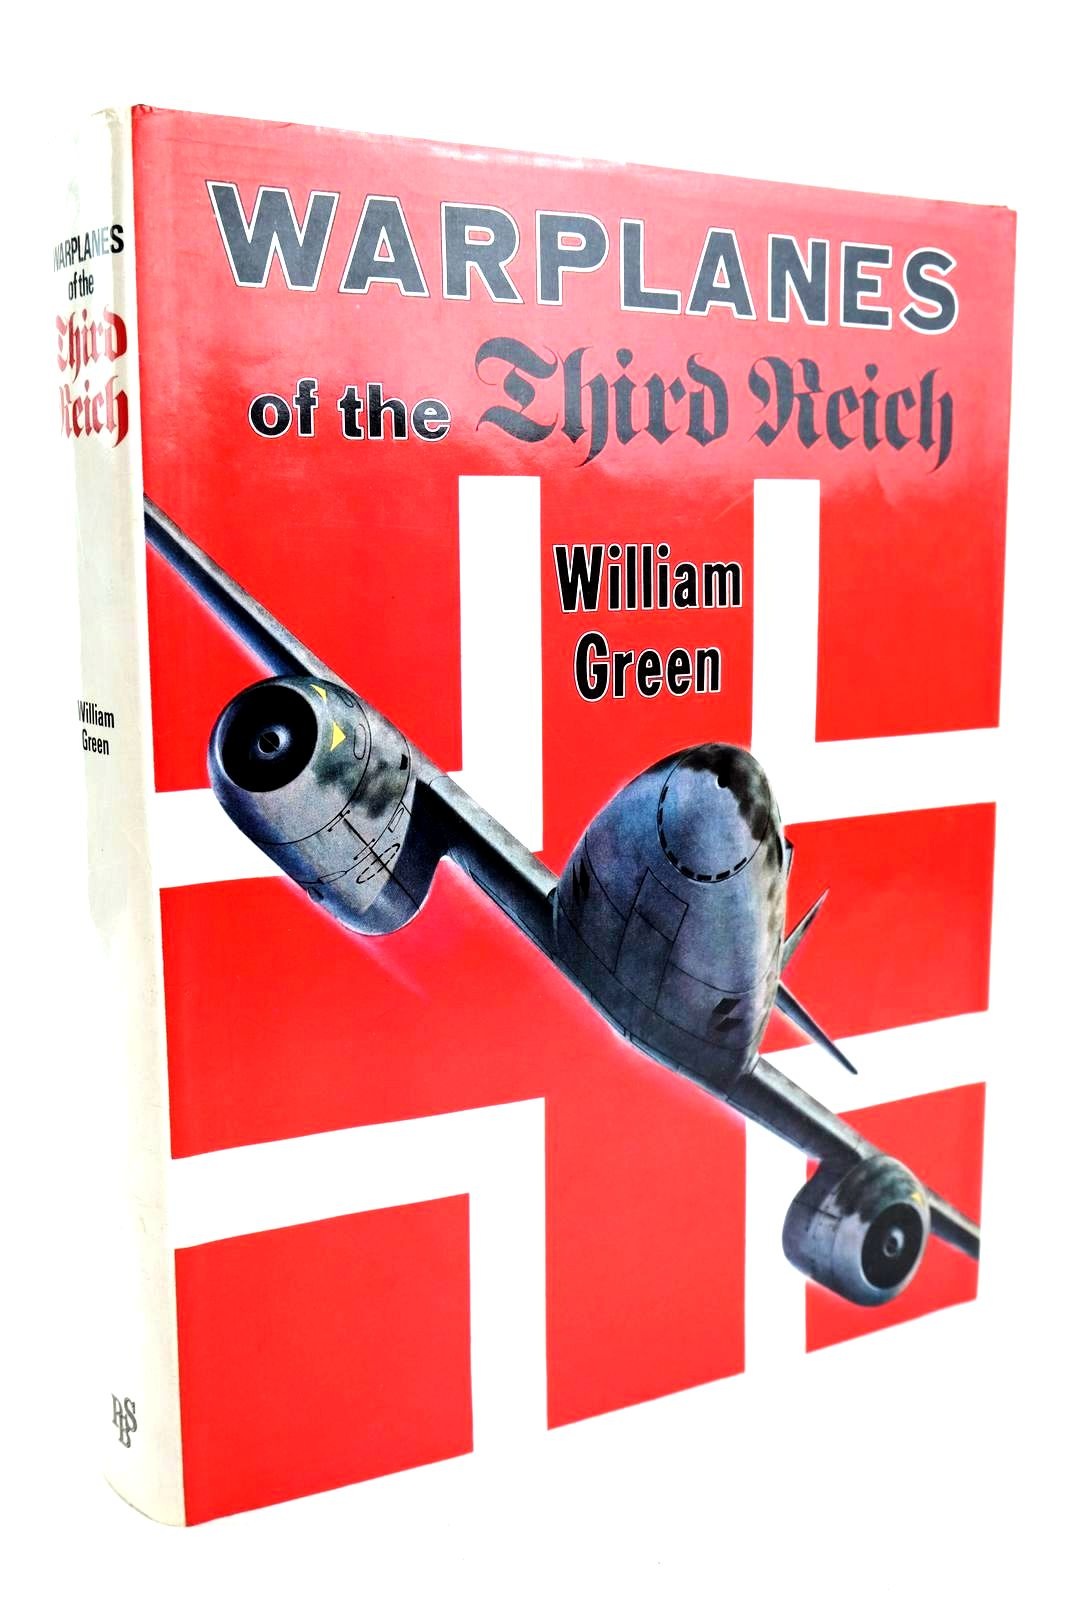 Photo of WARPLANES OF THE THIRD REICH written by Green, William published by Purnell Book Services Limited (STOCK CODE: 1320207)  for sale by Stella & Rose's Books